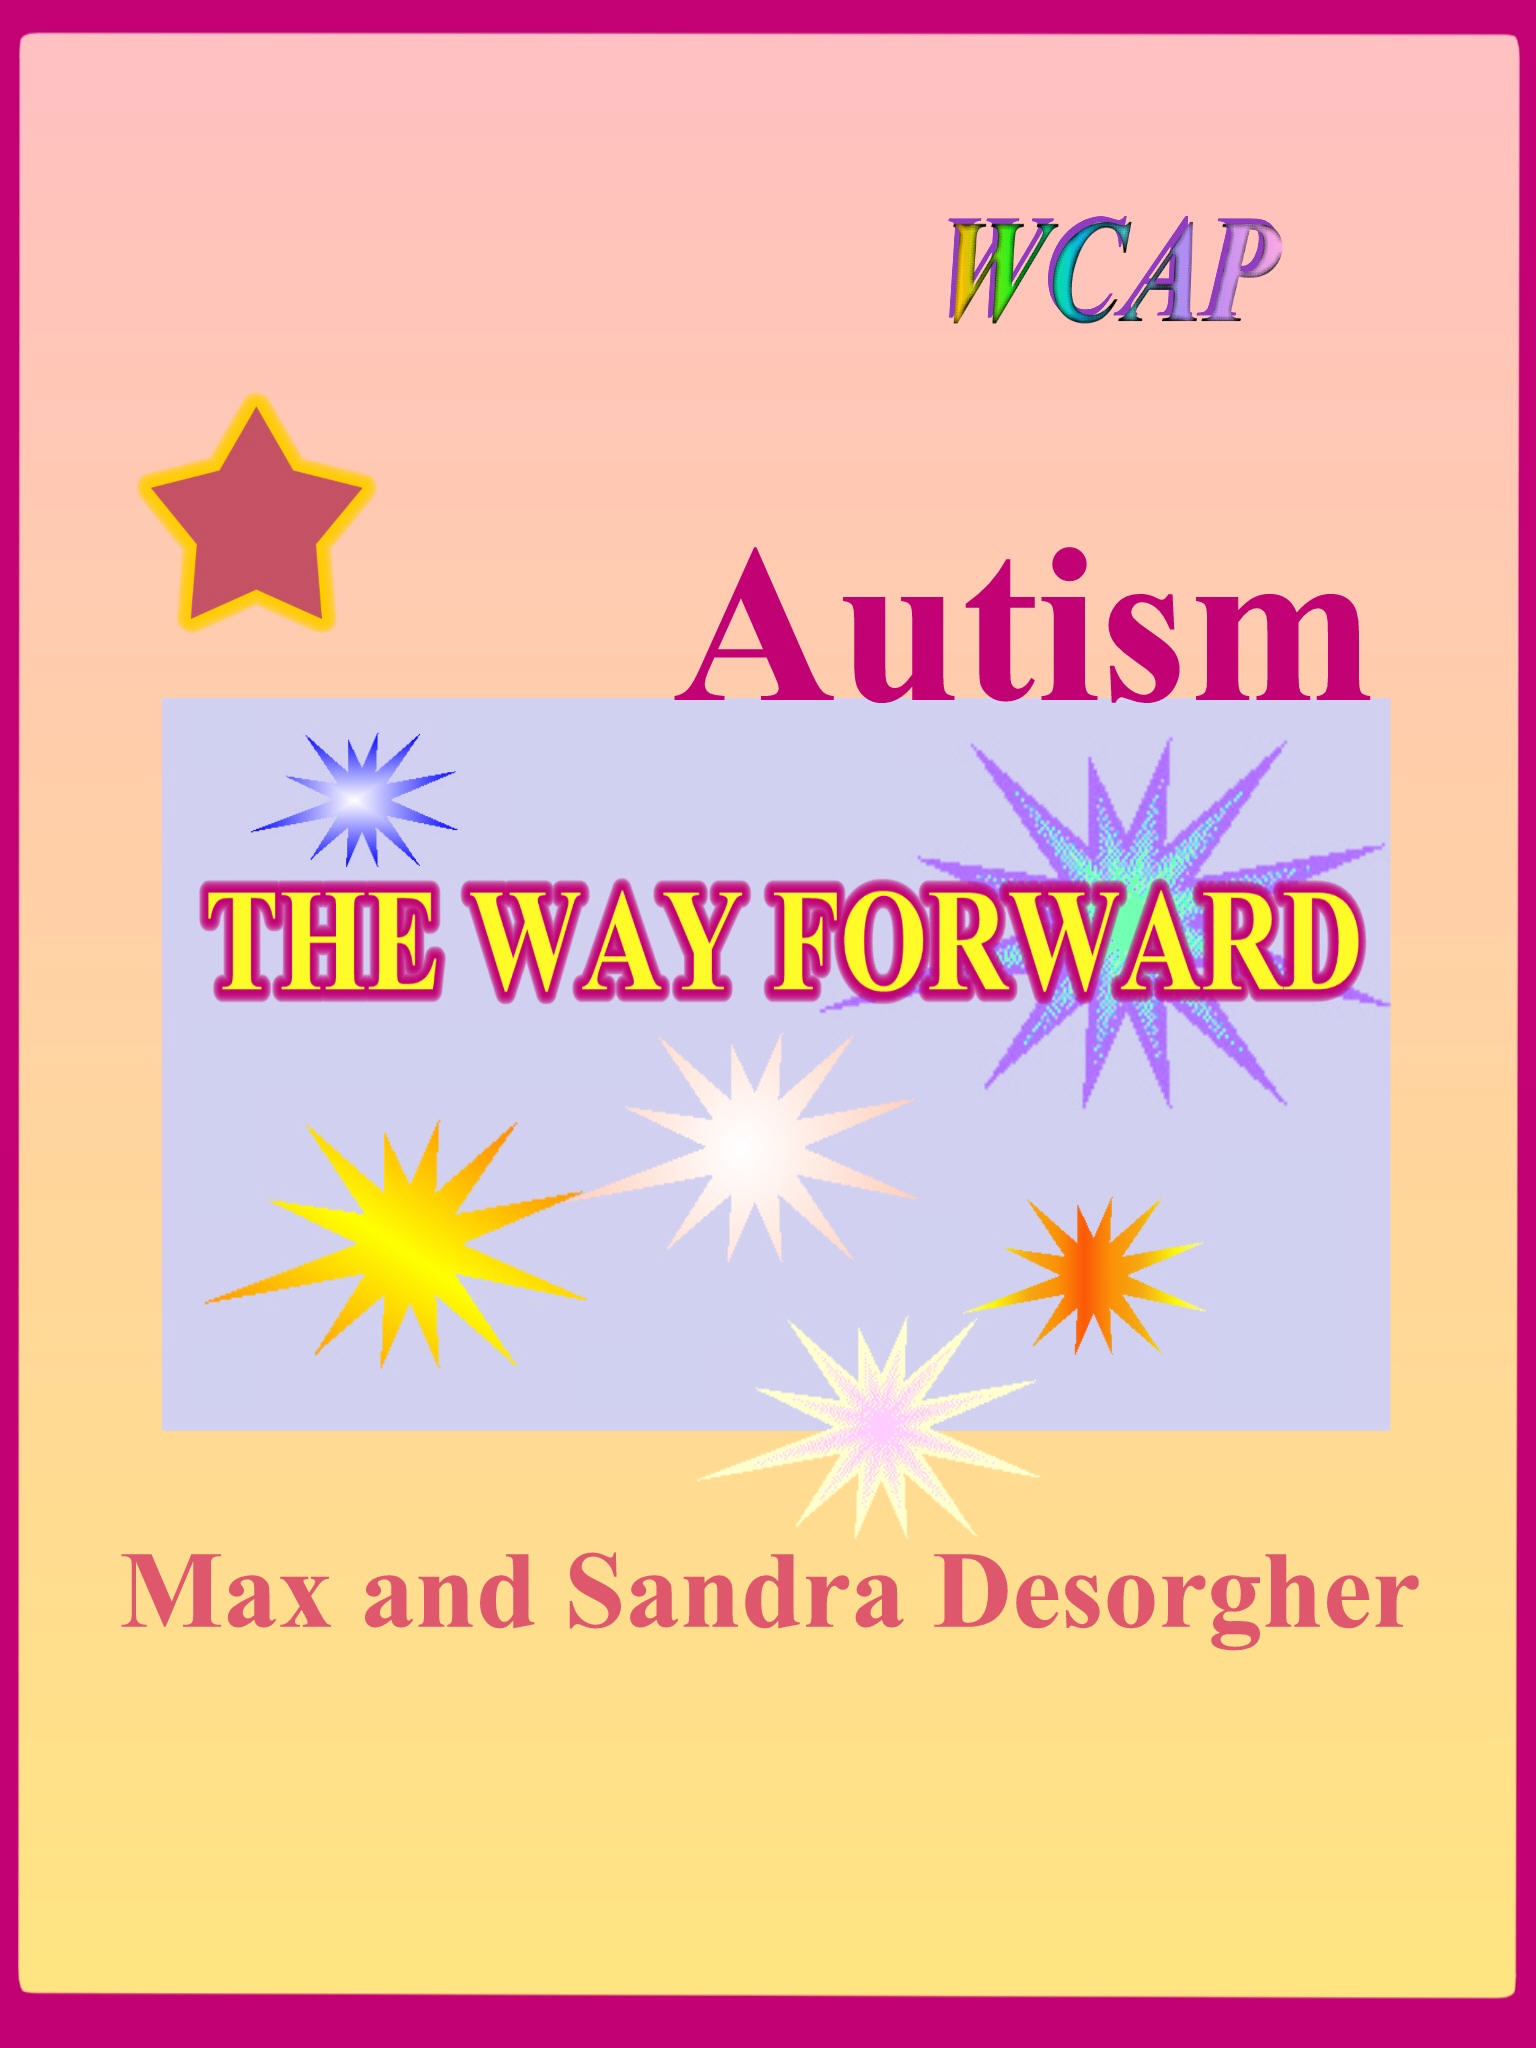 Autism - The Way Forward